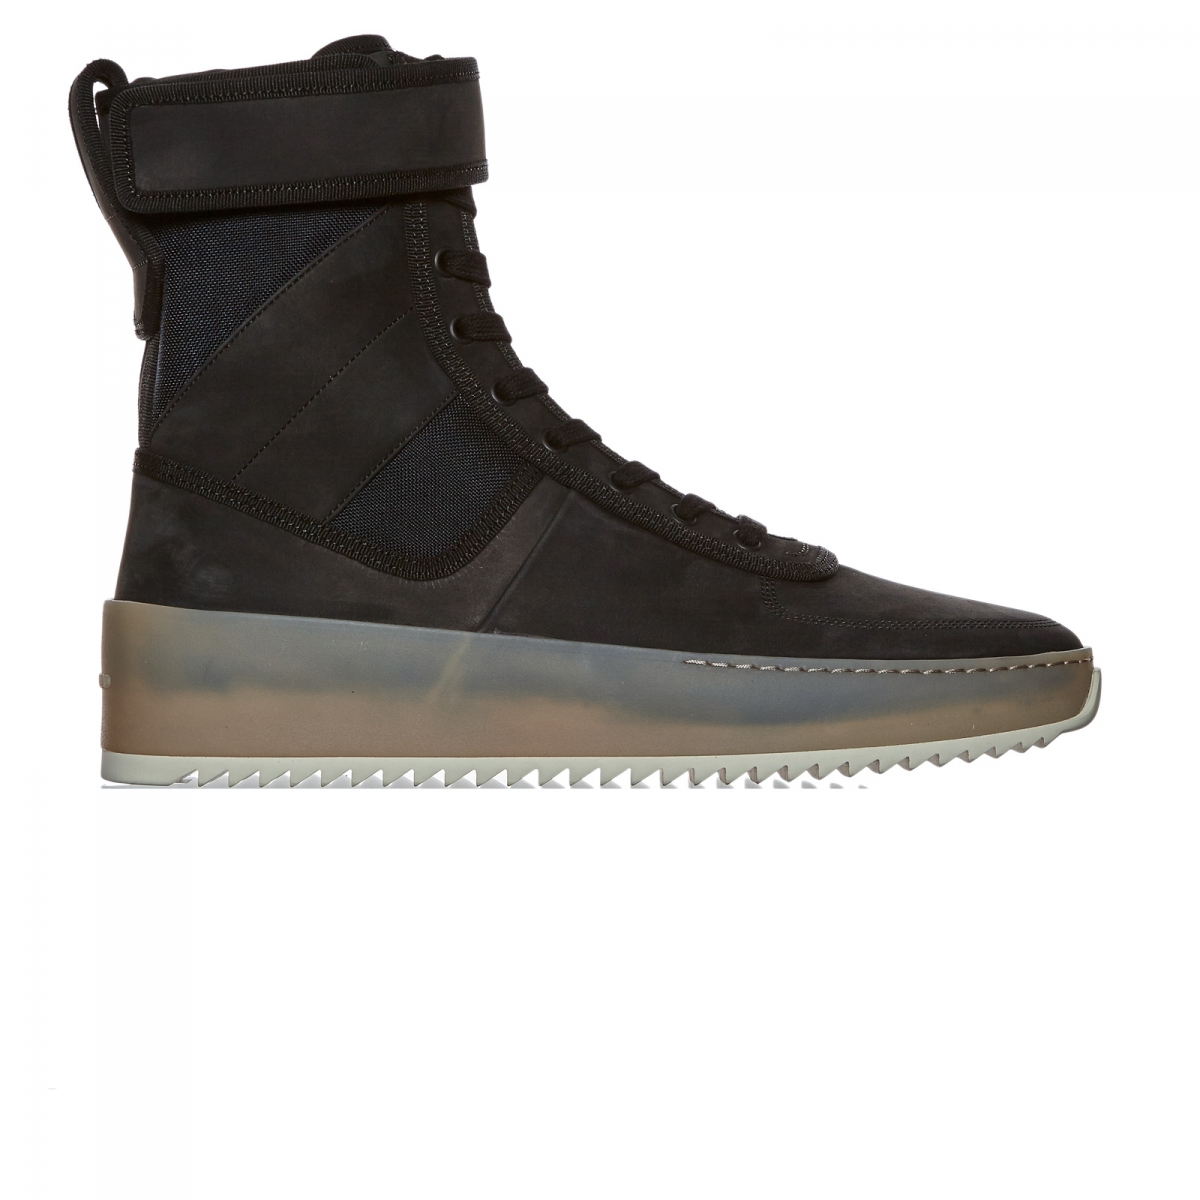 fear-of-god-military-sneakers